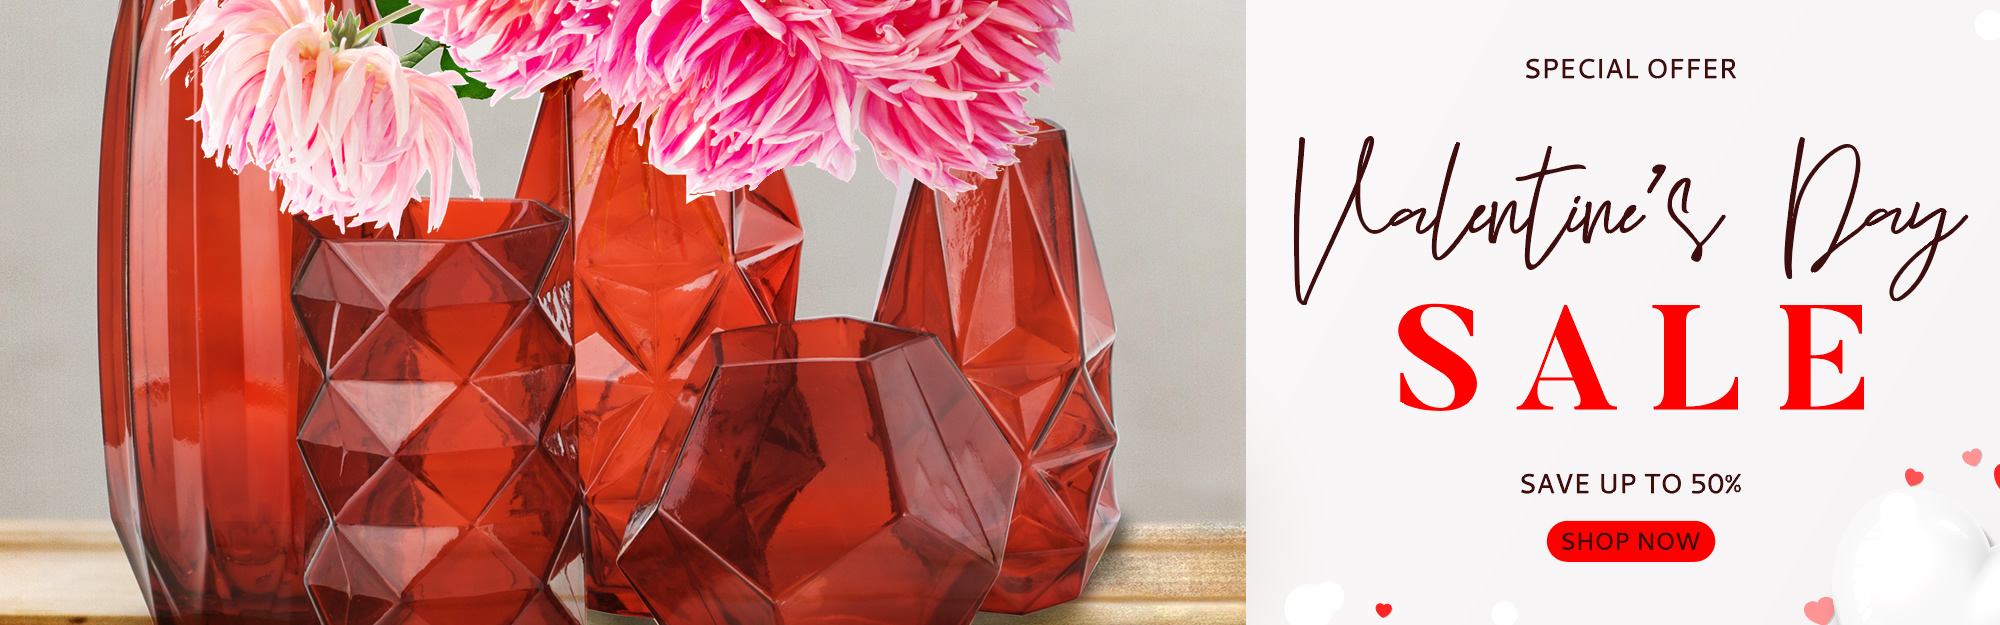 Click to view more Valentine's Red Vases